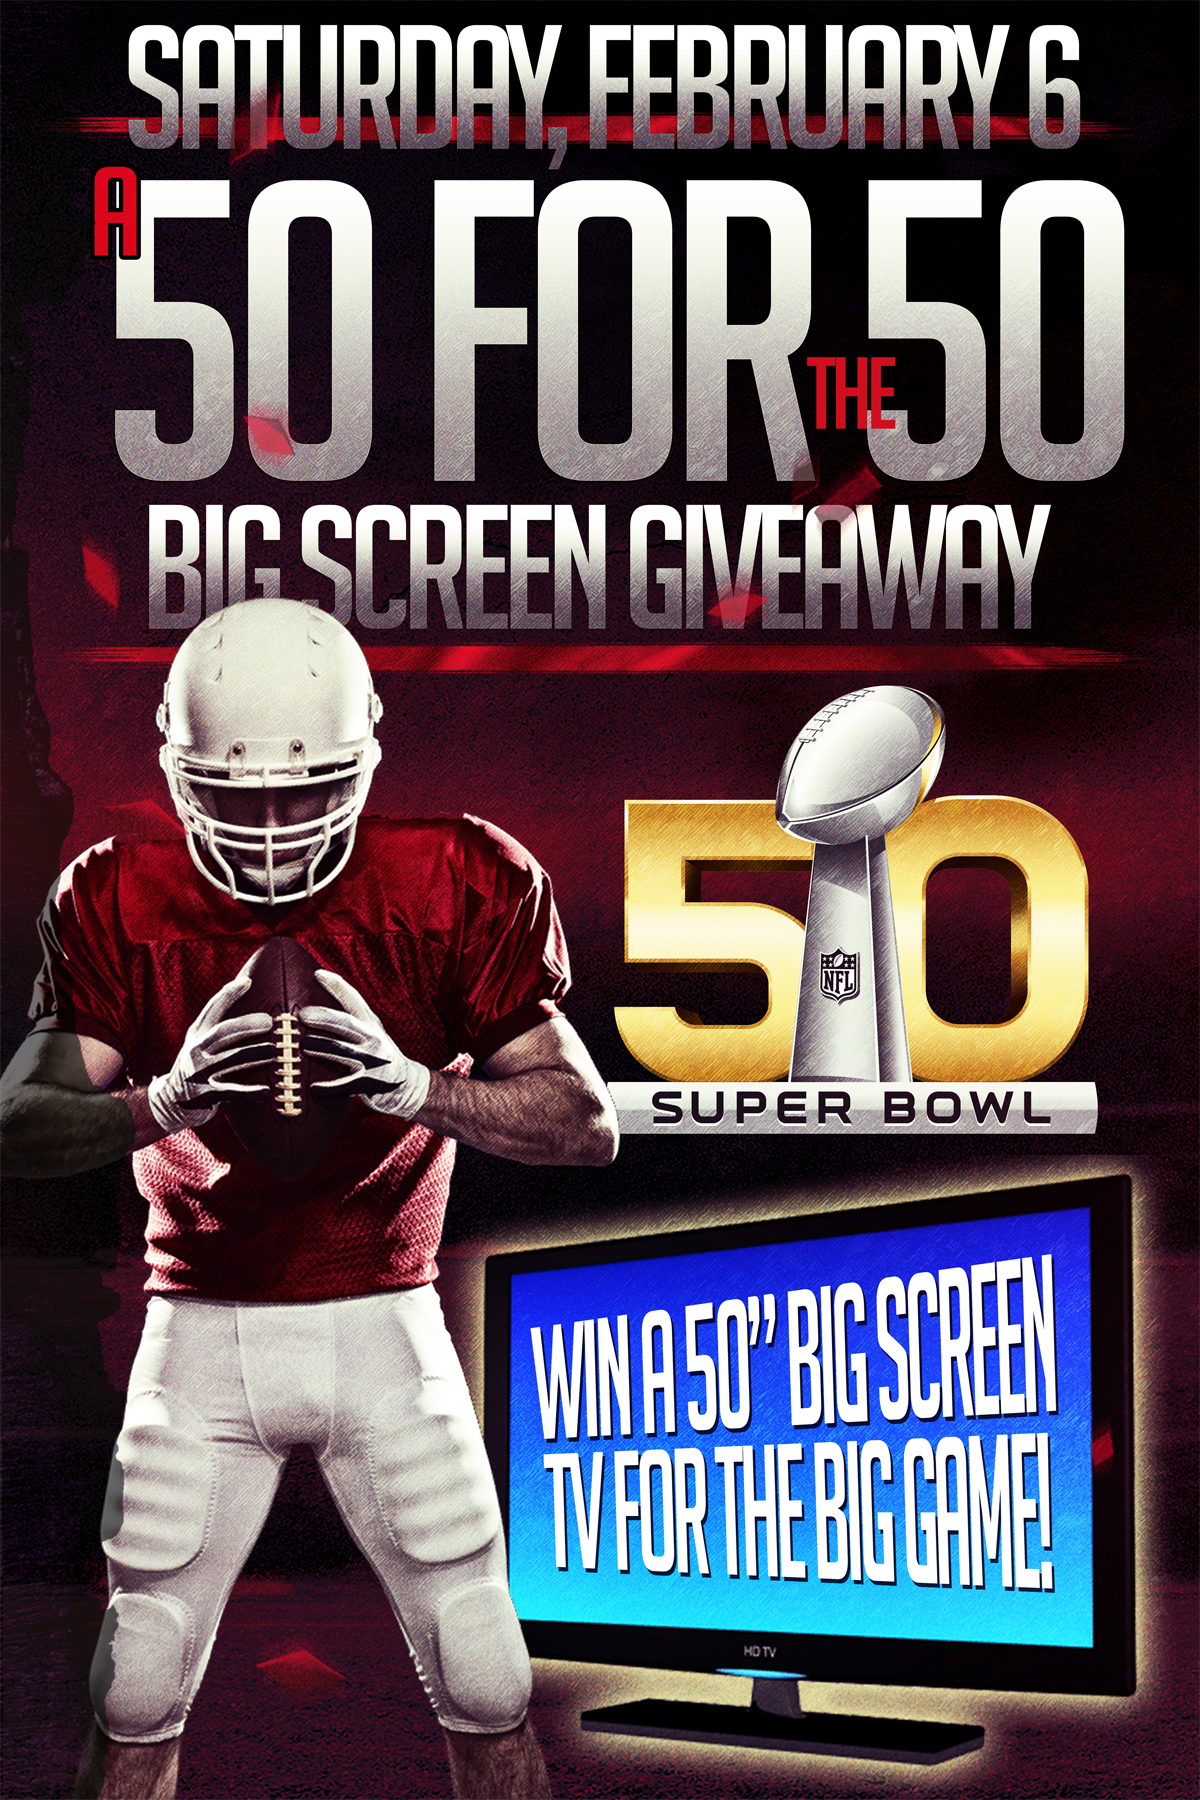 a 50 for the 50 big screen giveaway poster flyer design for the